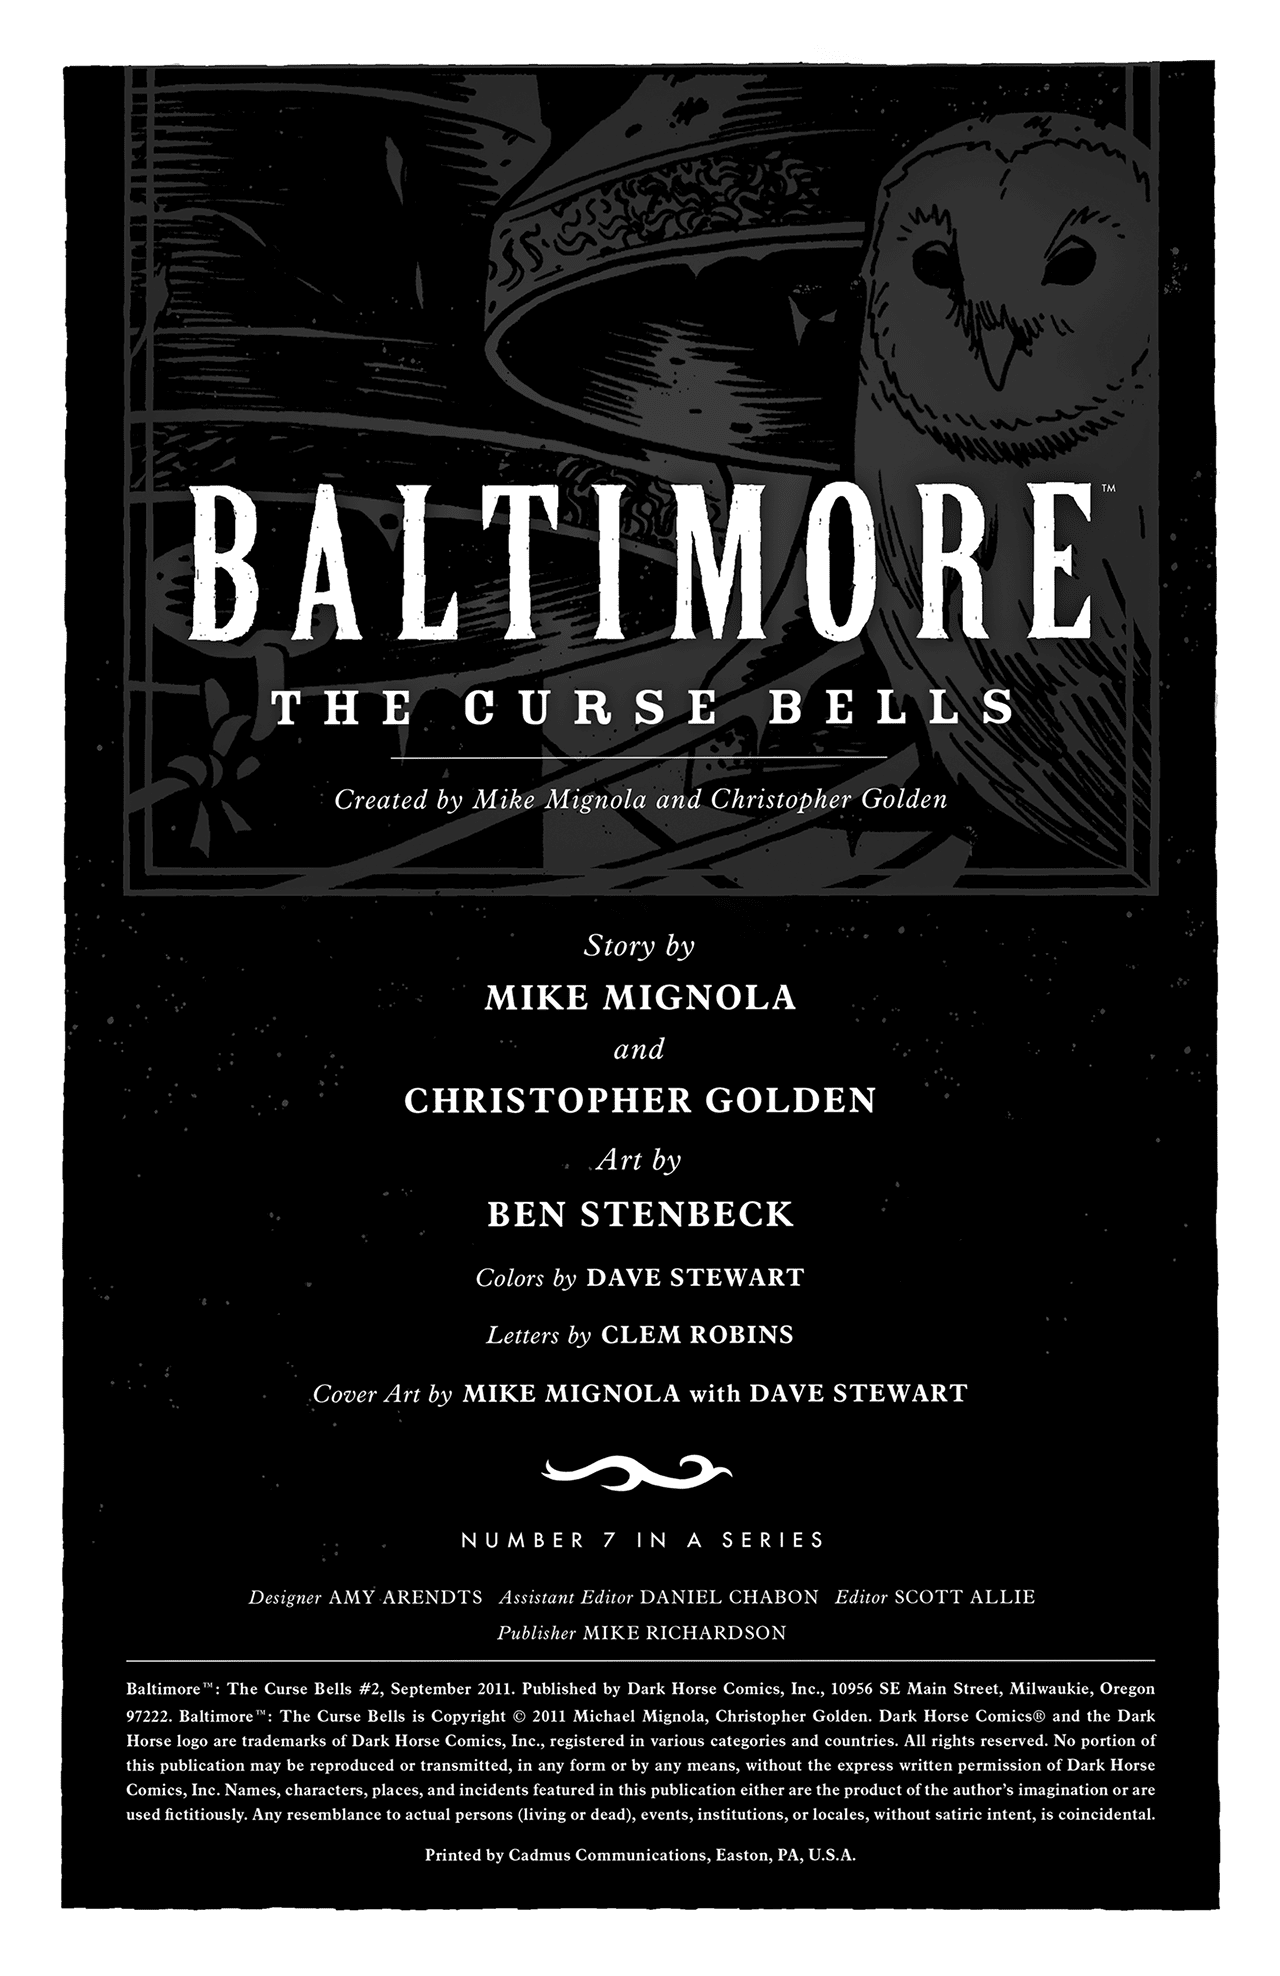 Read online Baltimore: The Curse Bells comic -  Issue #2 - 2